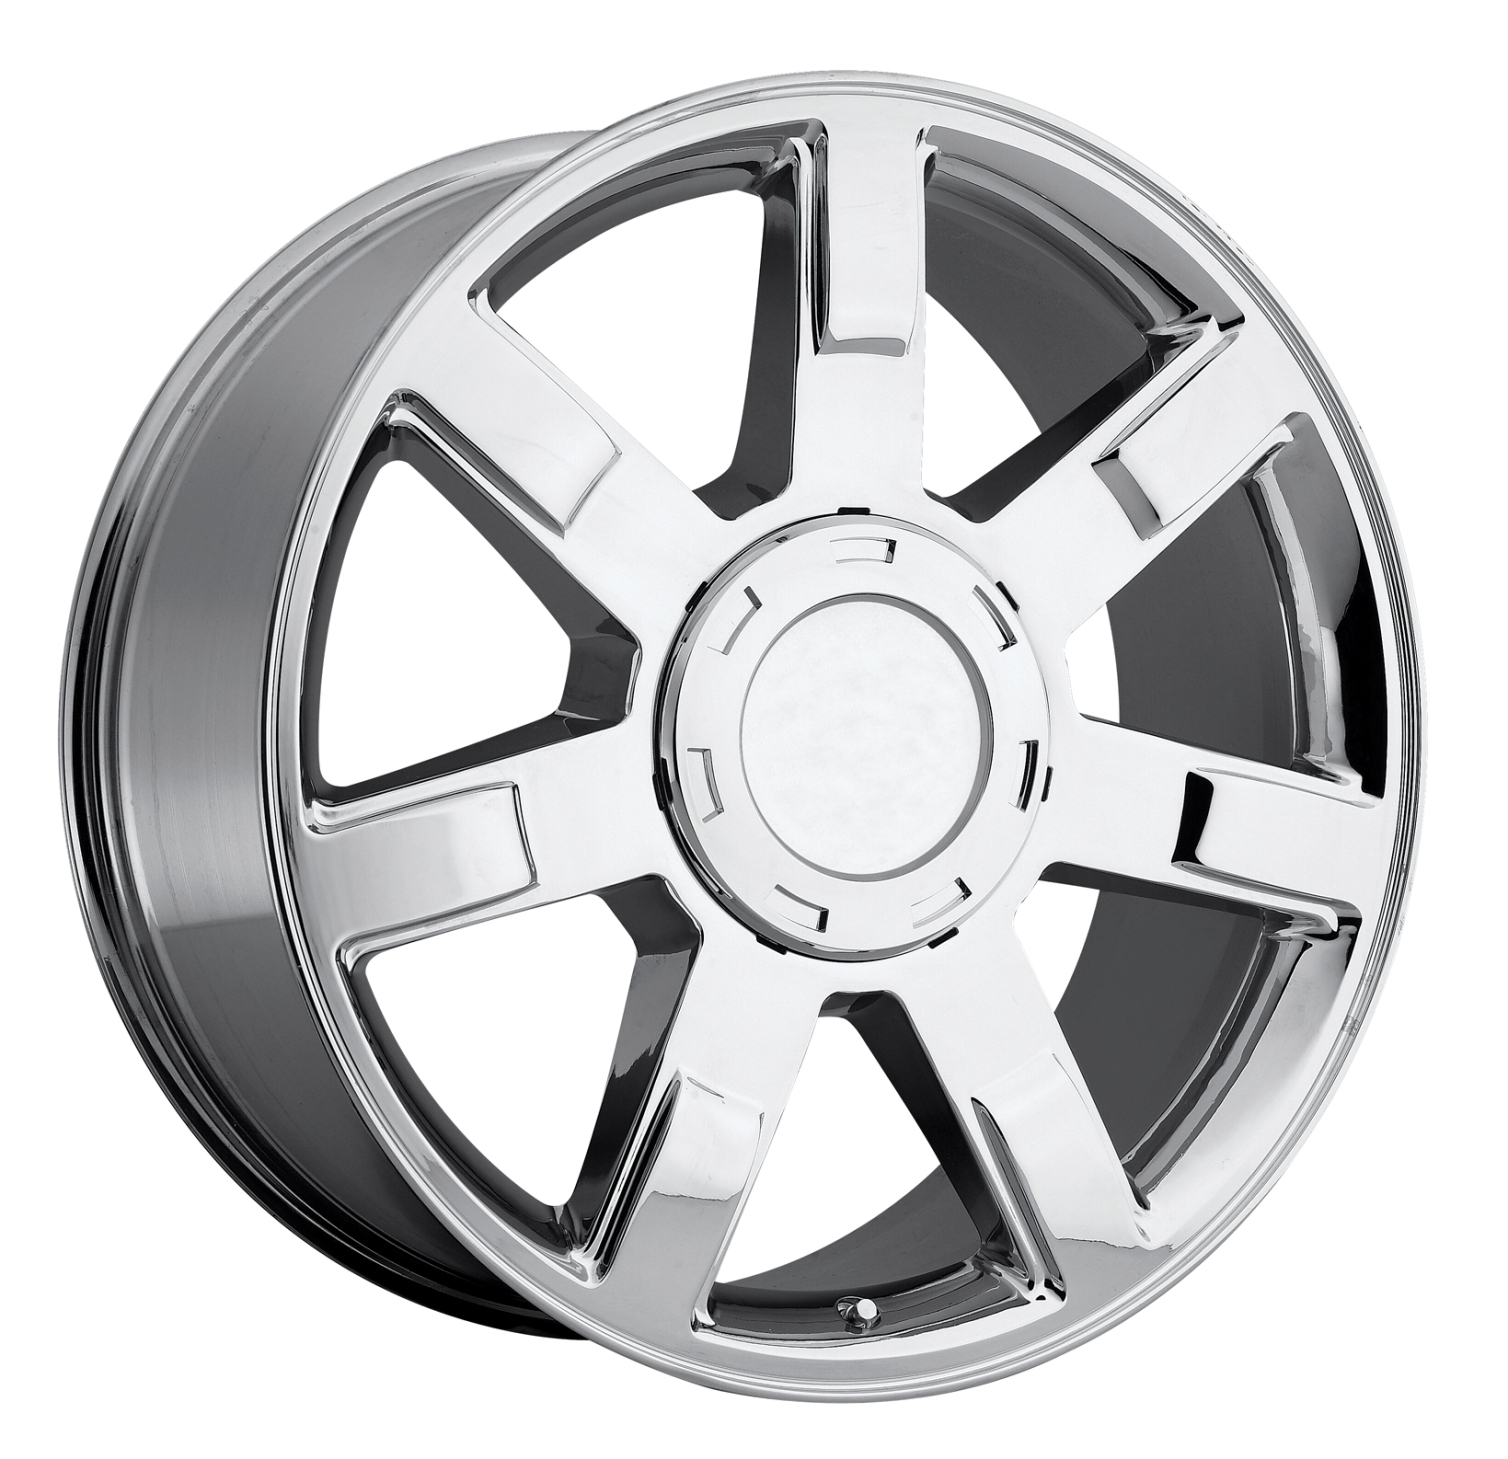 Cadillac Escalade 2007-2012 22x9 6x5.5 +15 - Wheel - Chrome With Cap